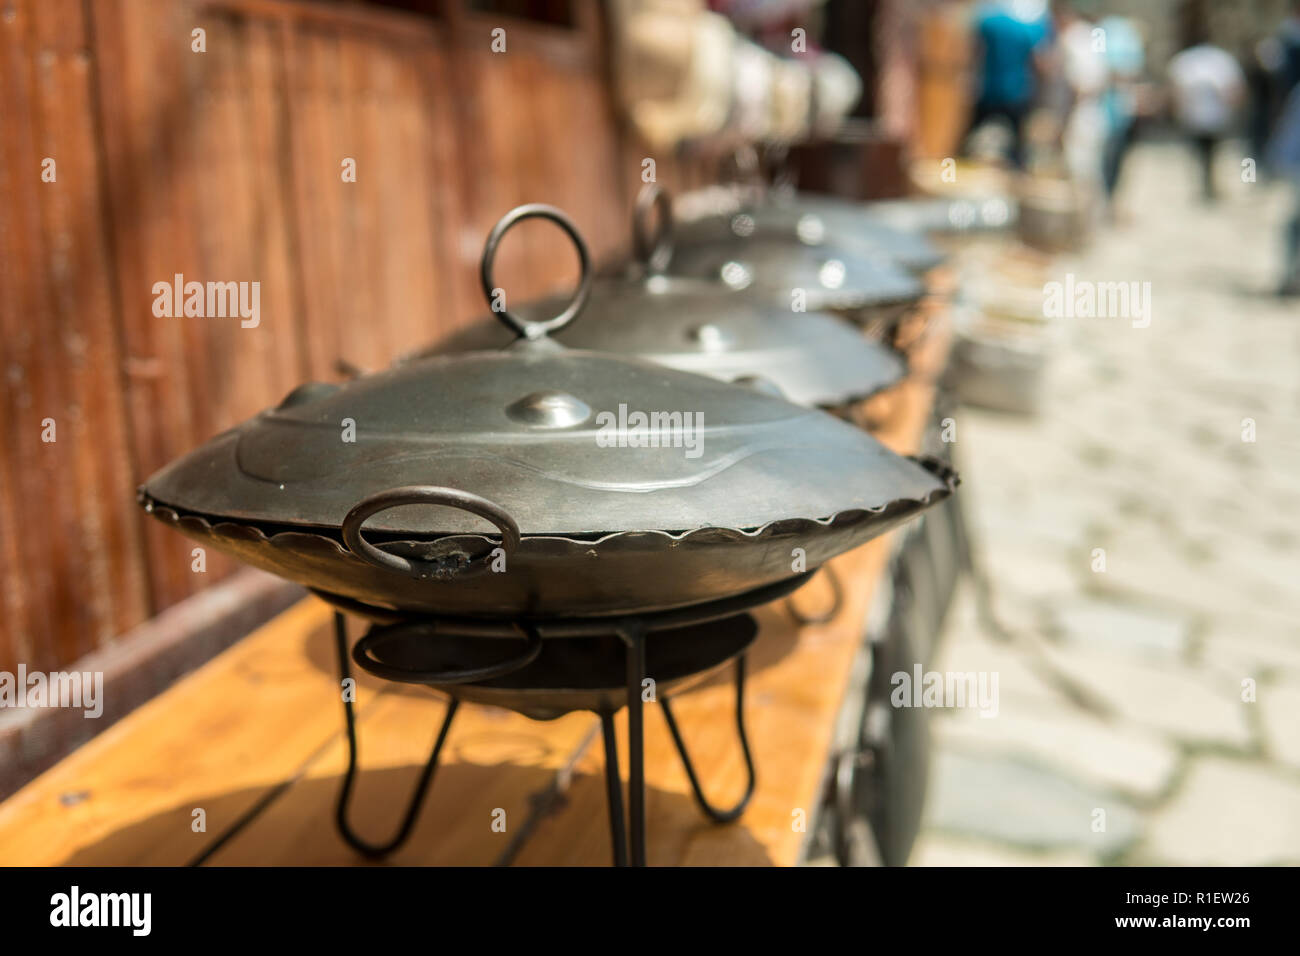 Eastern Saj pots for barbacue or kebap for sale at the market. - Stock Image